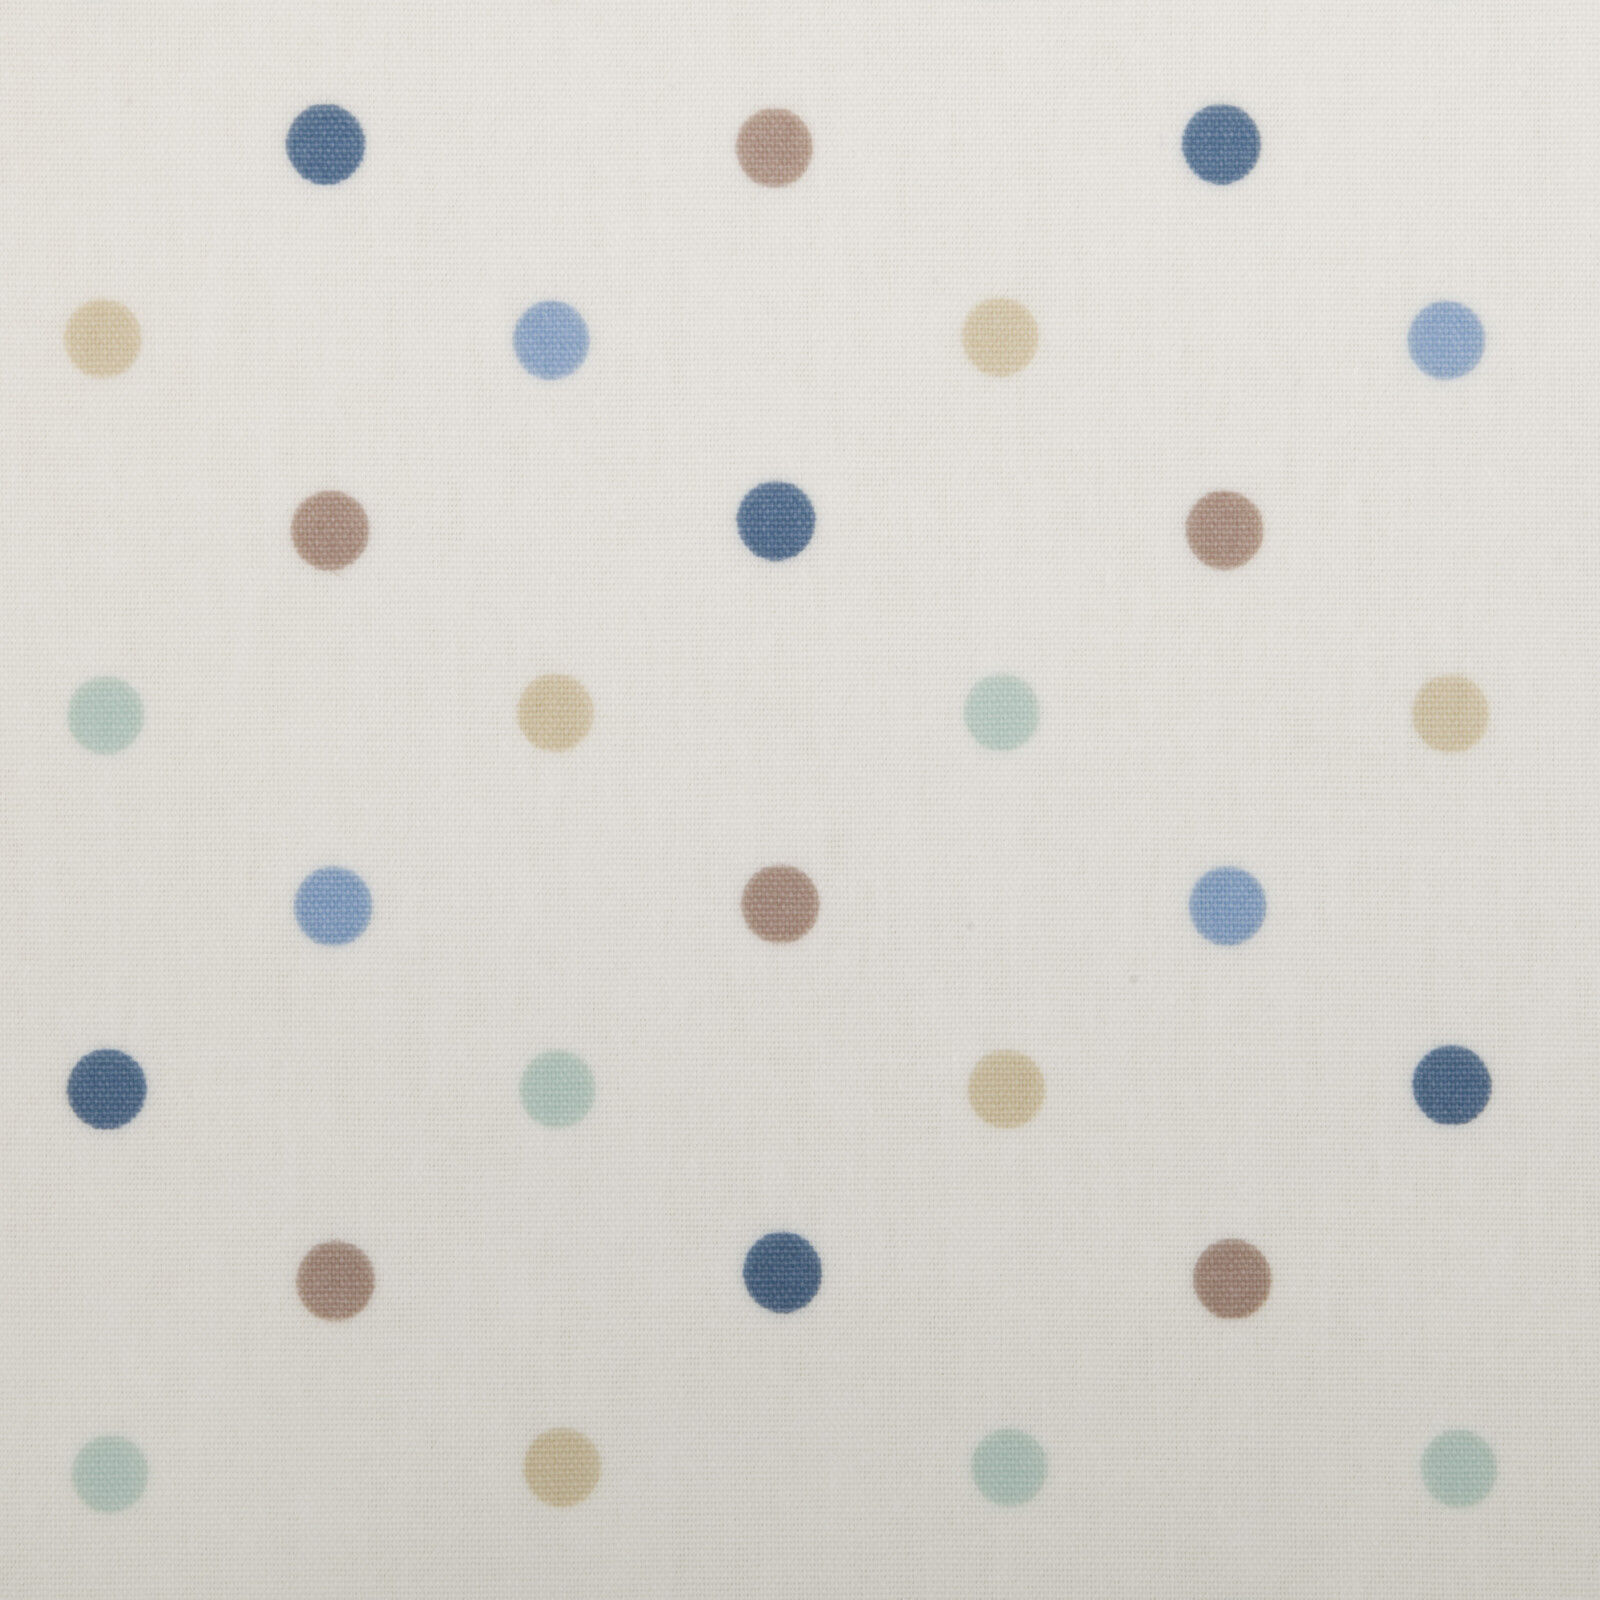 Dotty bluee Brown & Green Polka Dot Spot Oilcloth Wipeclean PVC Vinyl Tablecloth